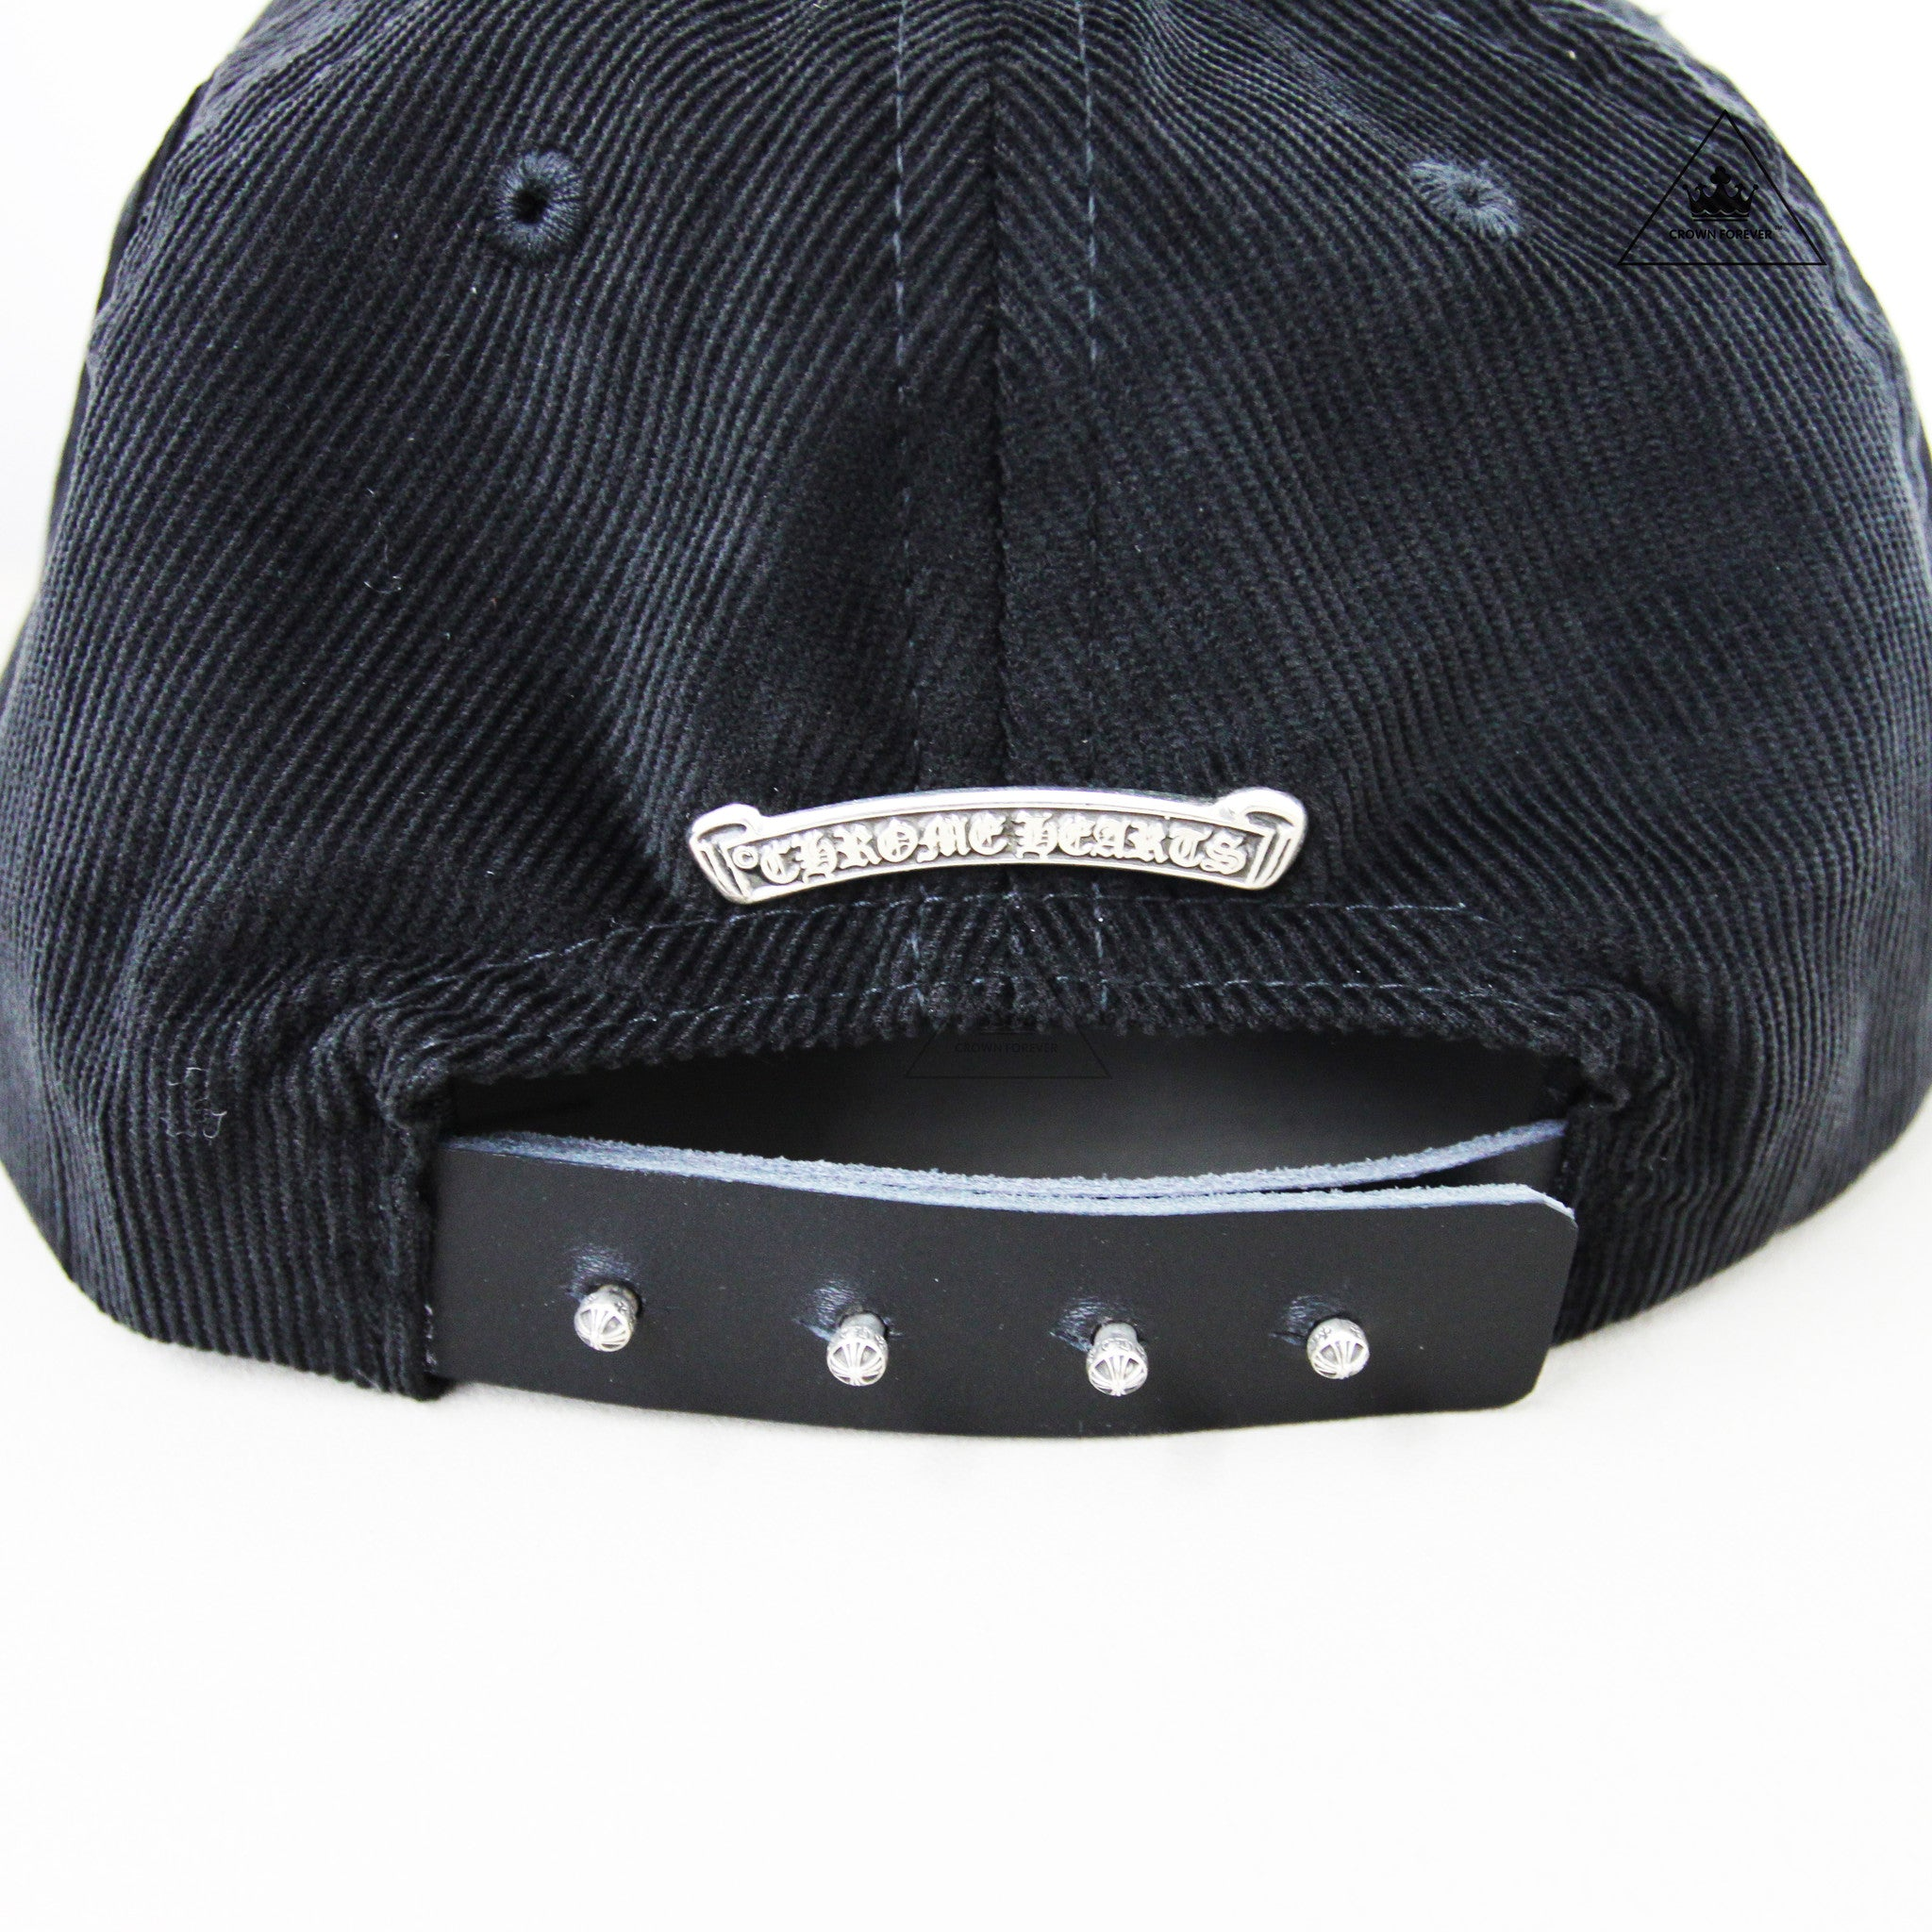 747835a1822 CHROME HEARTS HATS BEANIES – Page 5 – Crown Forever